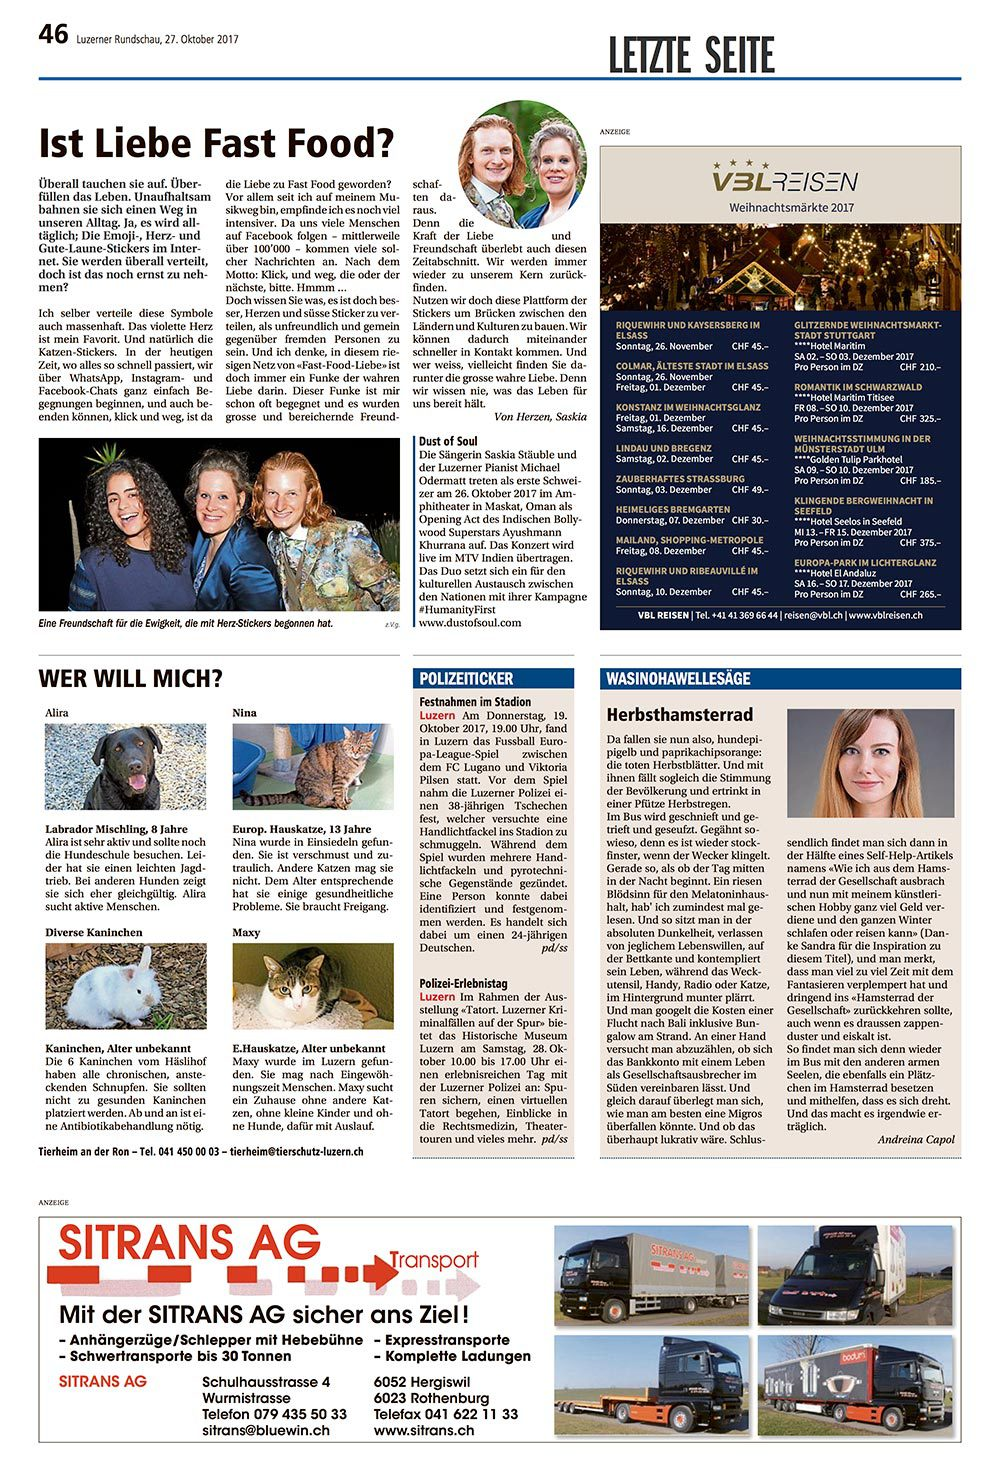 Luzerner Rundschau as of Friday, 27 October 2017